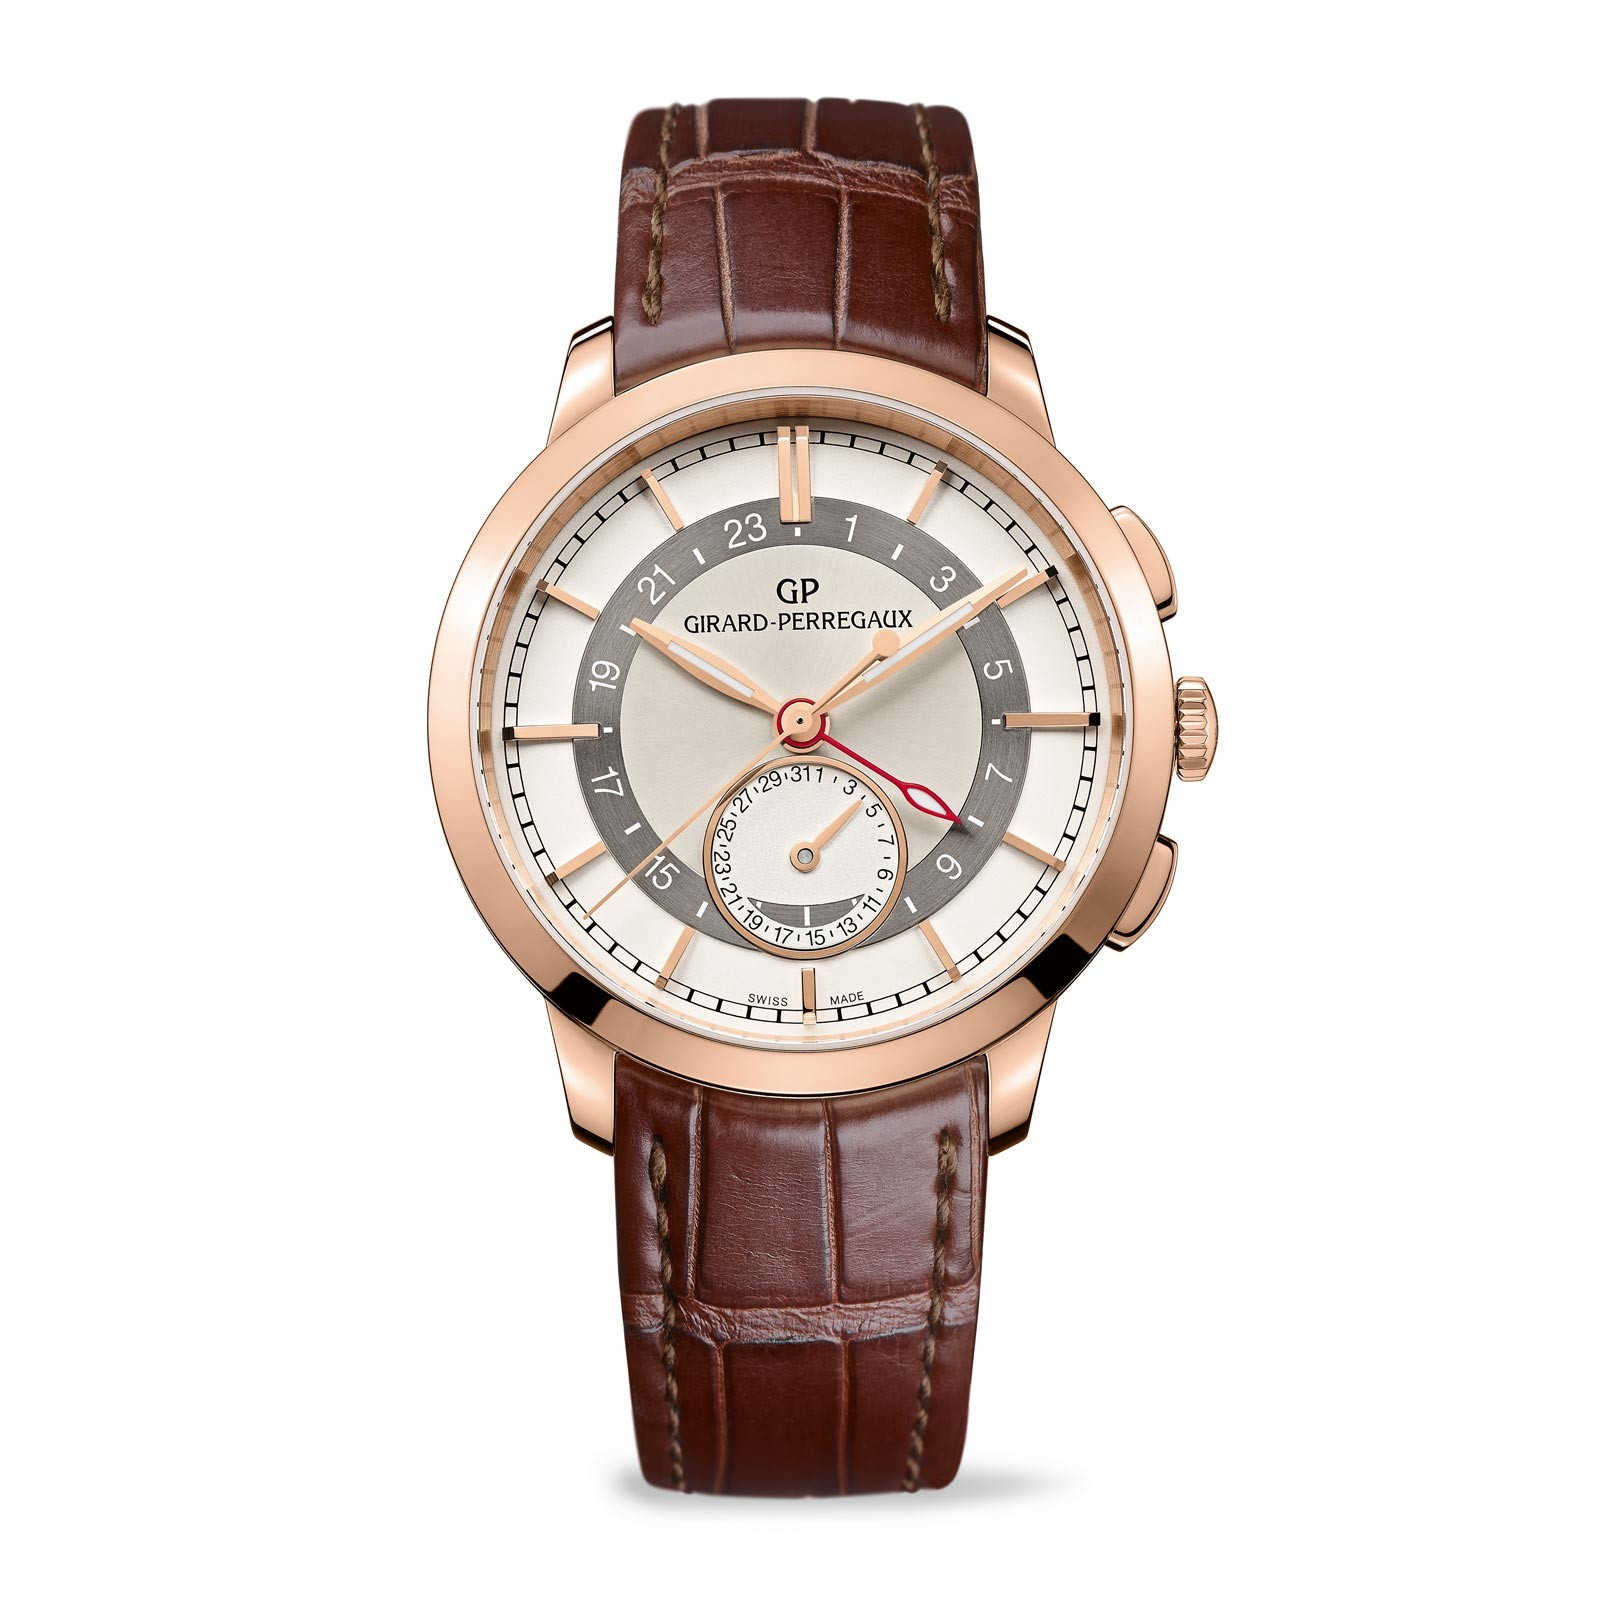 Watch review girard perregaux 1966 dual time with 18k rose gold best swiss watch brands review for Girard perregaux